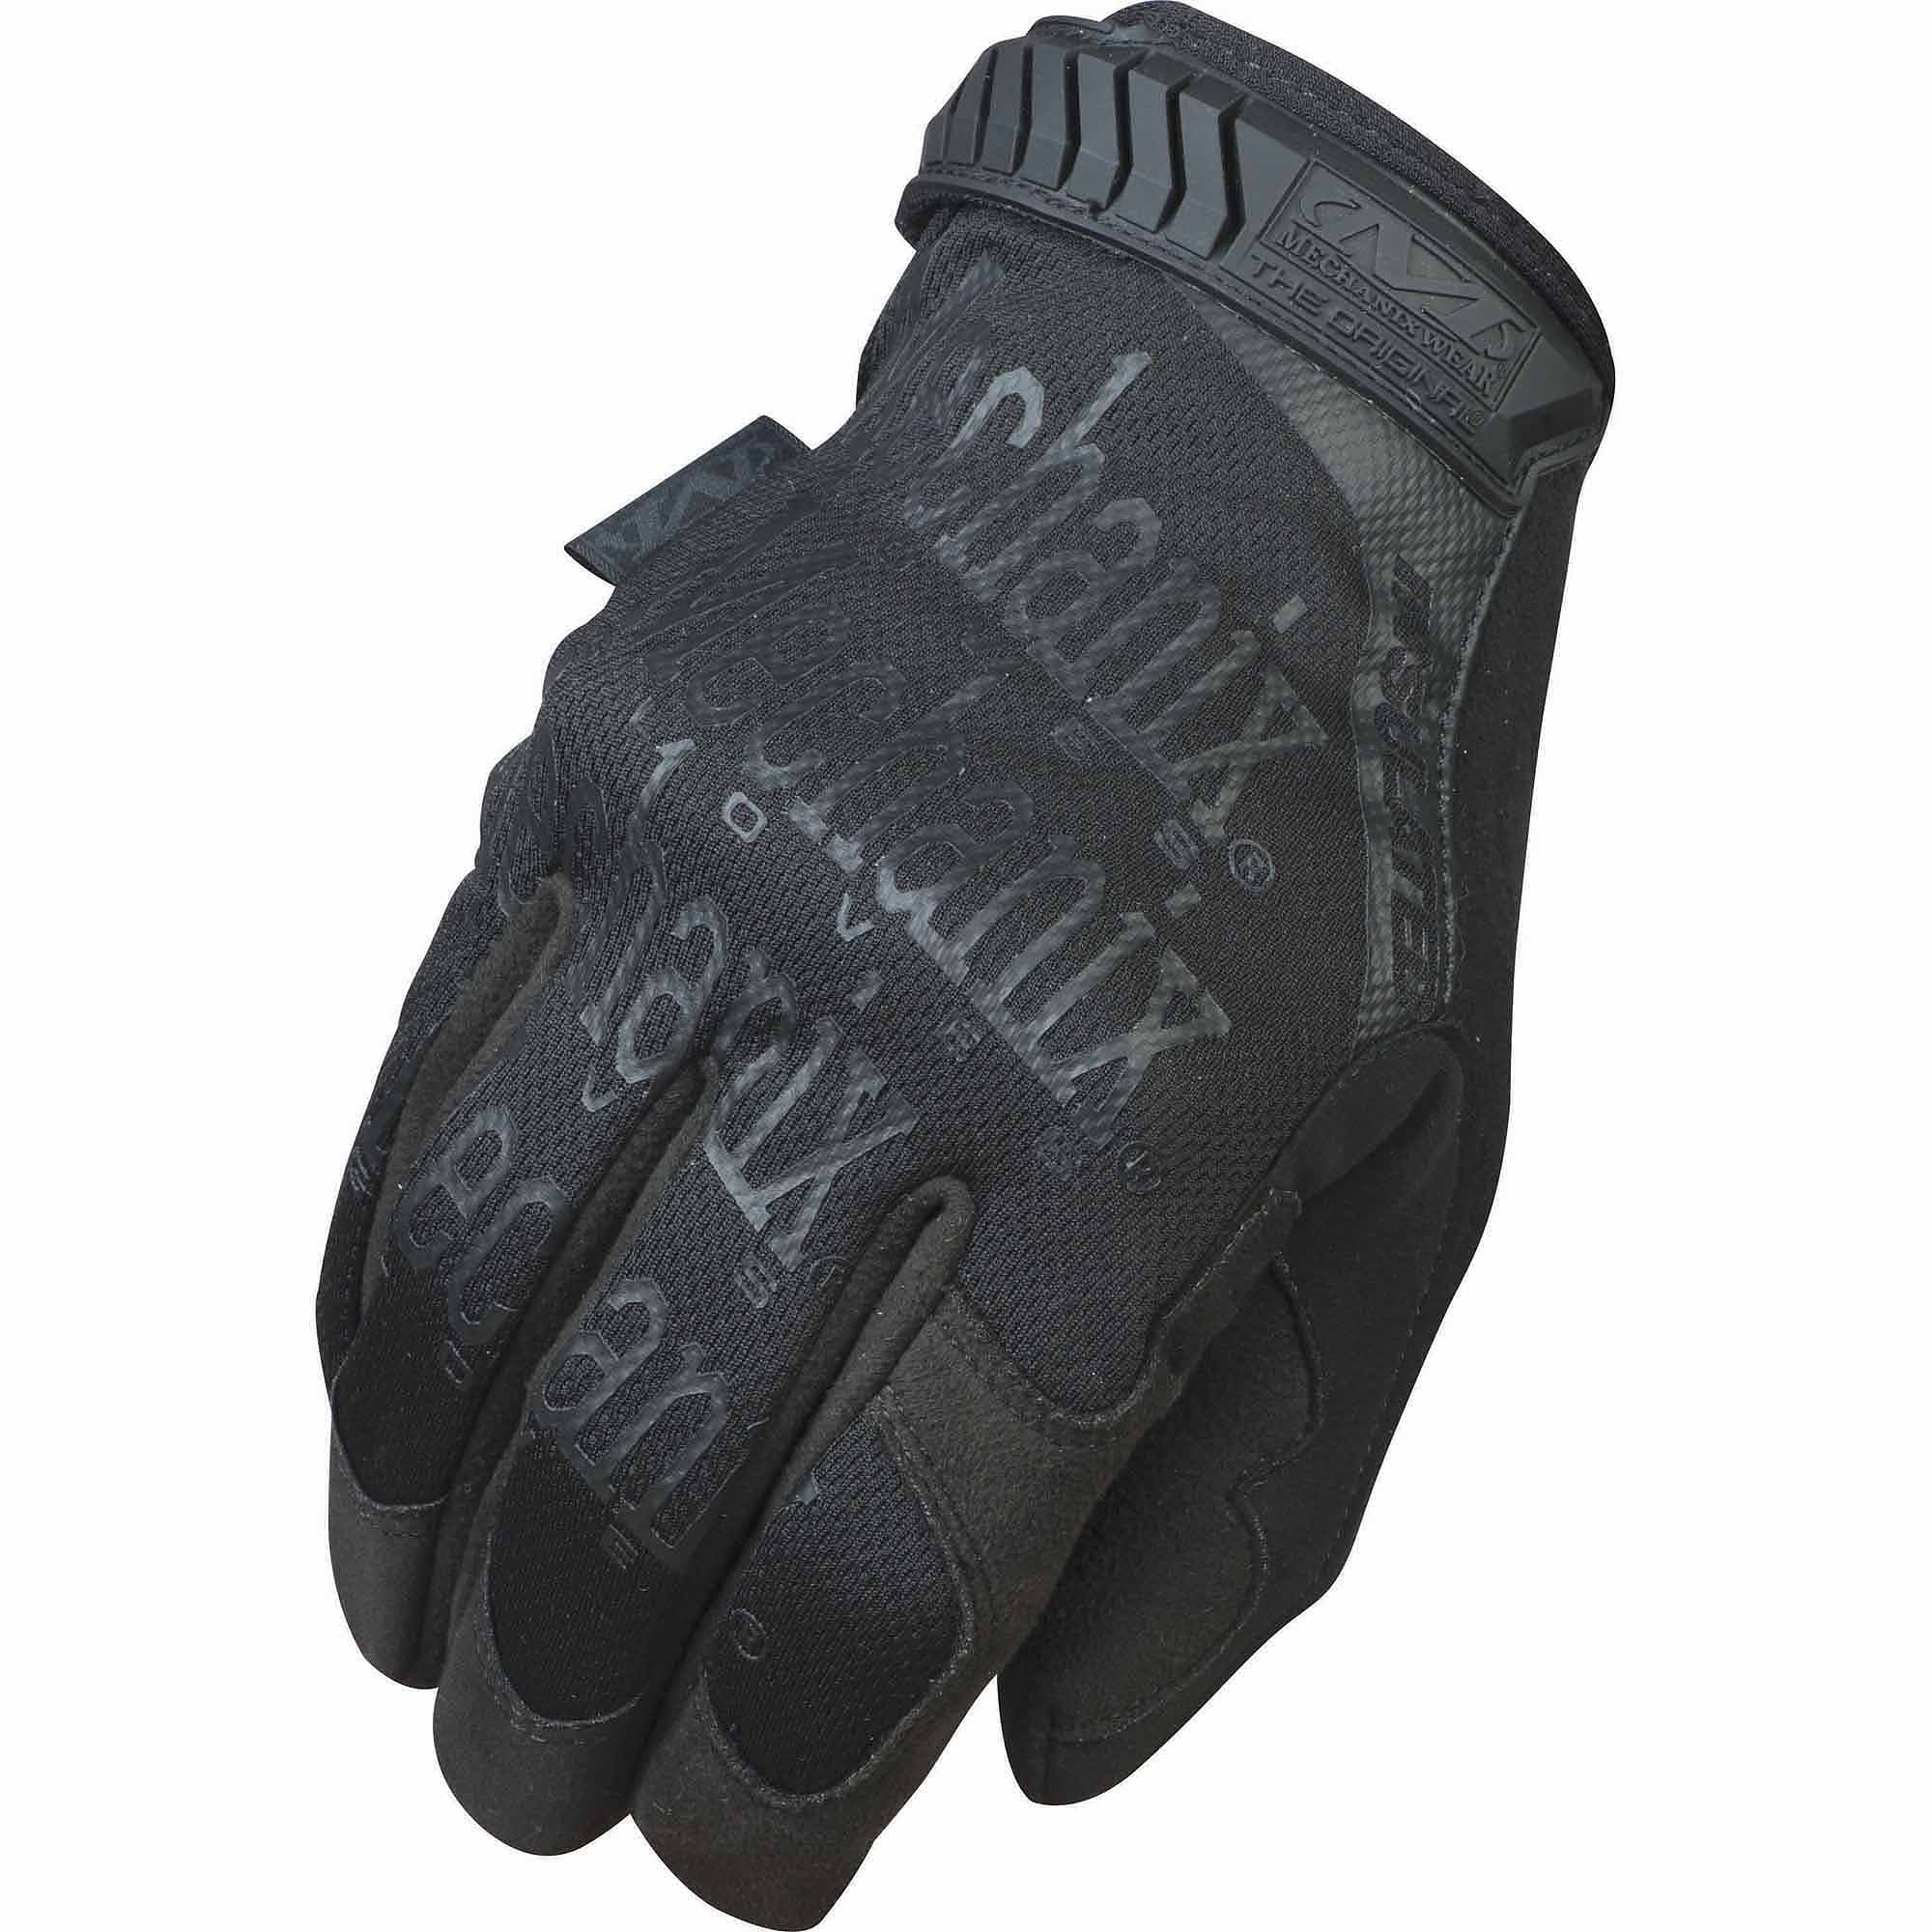 Leather work gloves with thinsulate lining - Leather Work Gloves With Thinsulate Lining 42